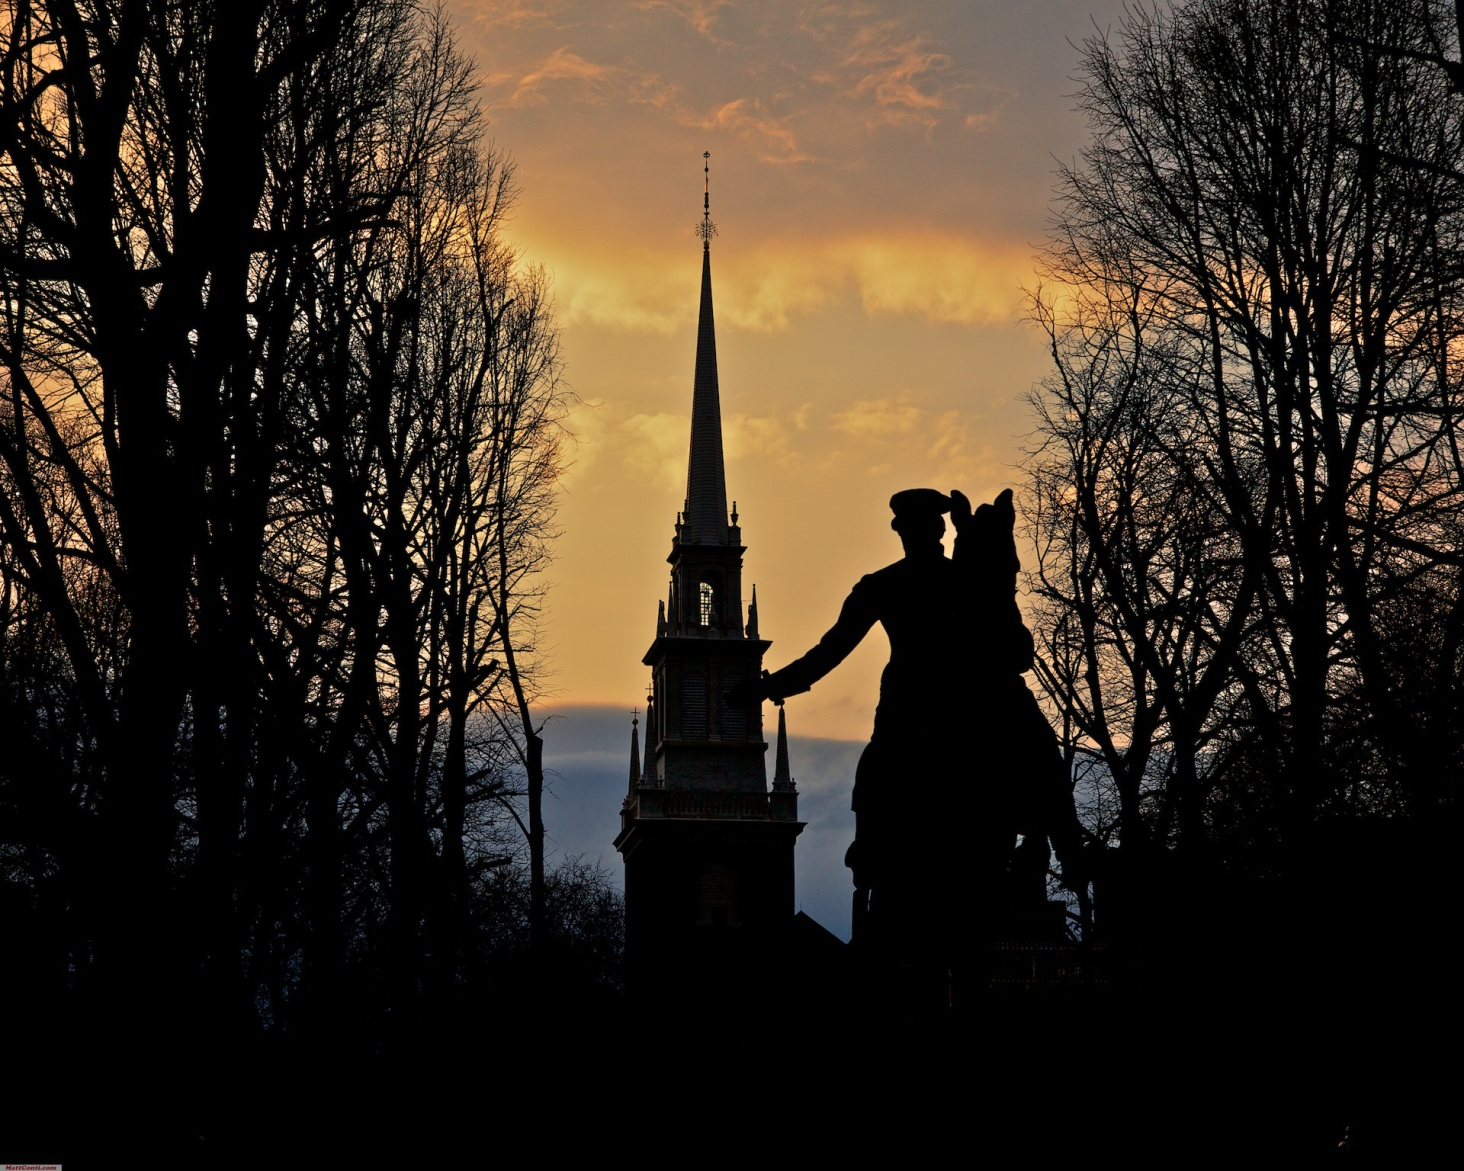 Old North Church with the statue of Paul Revere in silhouette. Photo courtesy of Matt Conti.